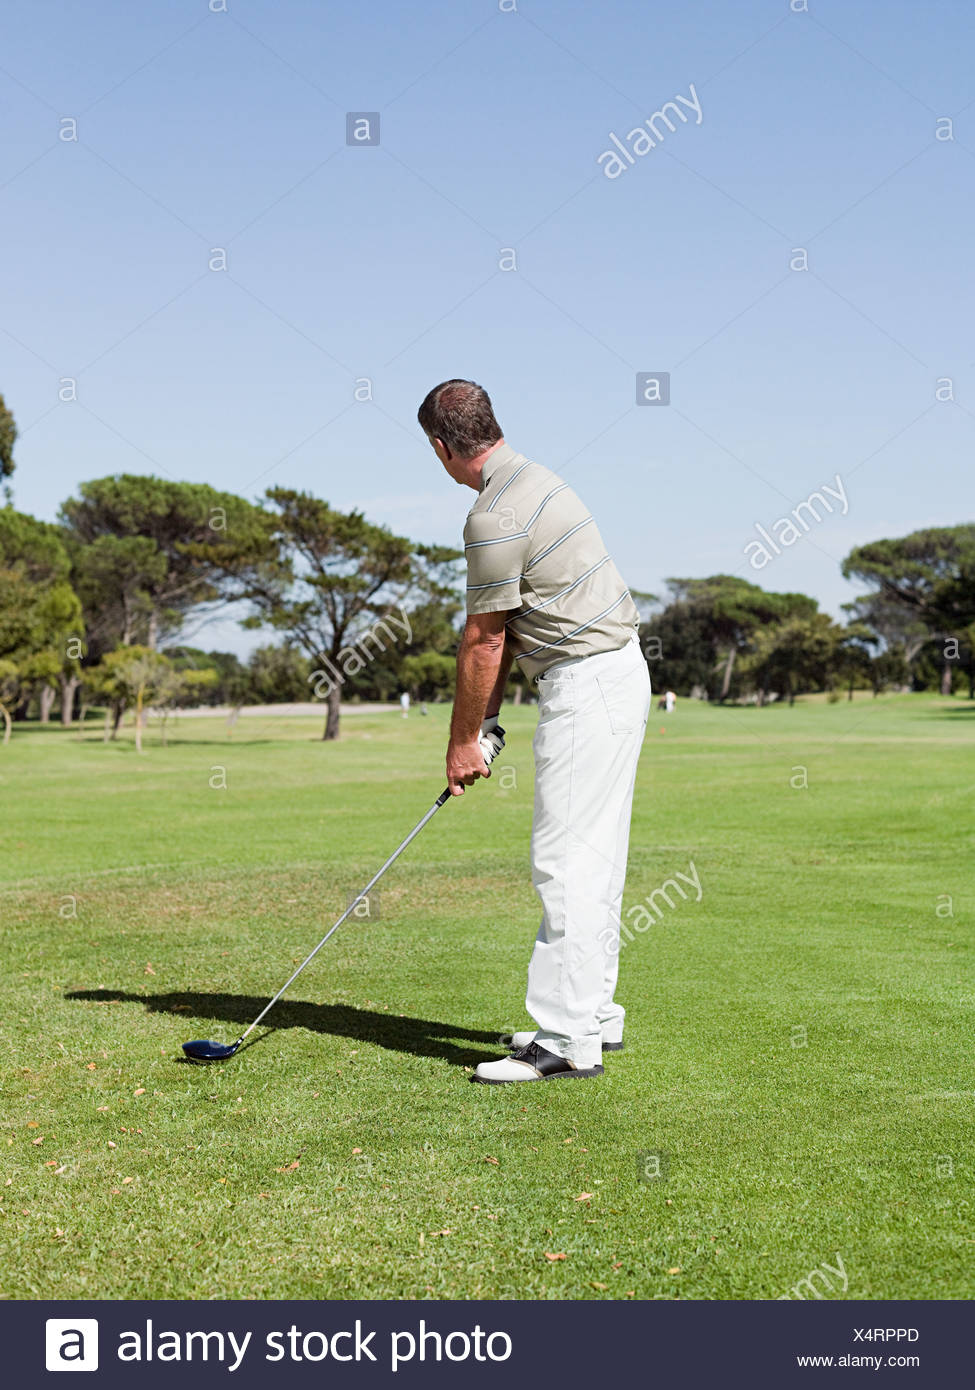 Man playing golf on golf course - Stock Image